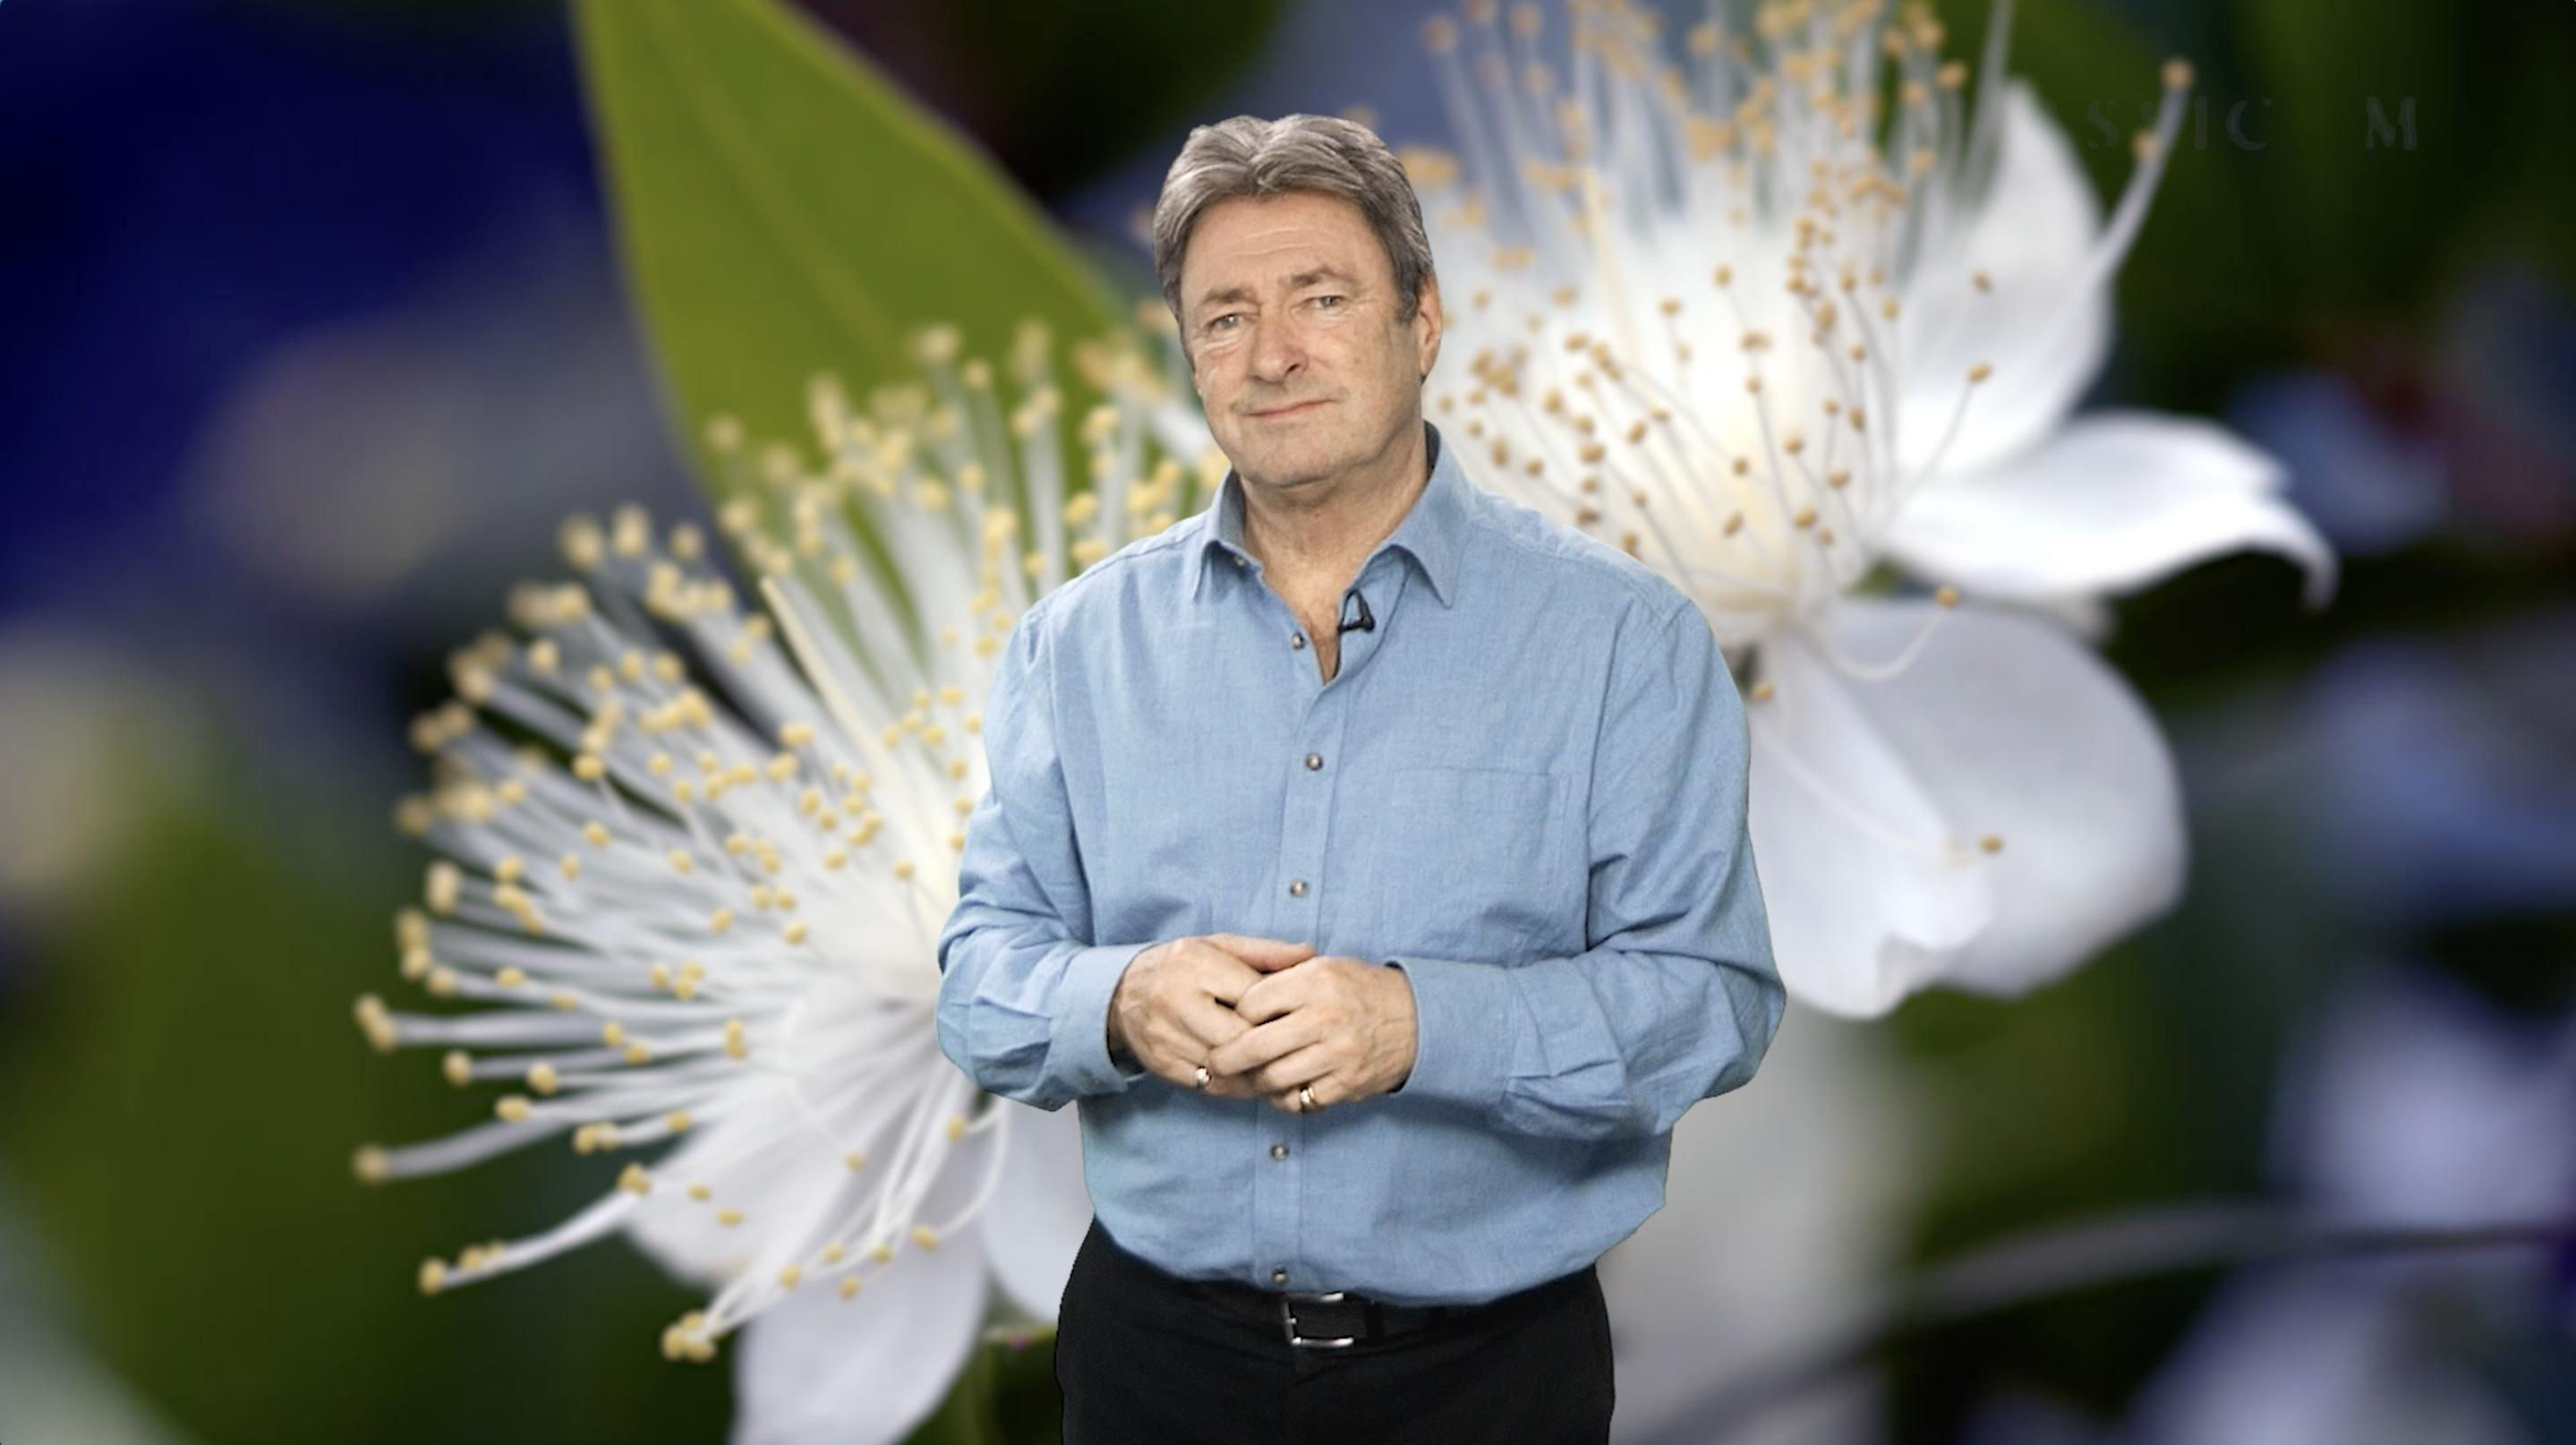 alan titchmarsh green screen